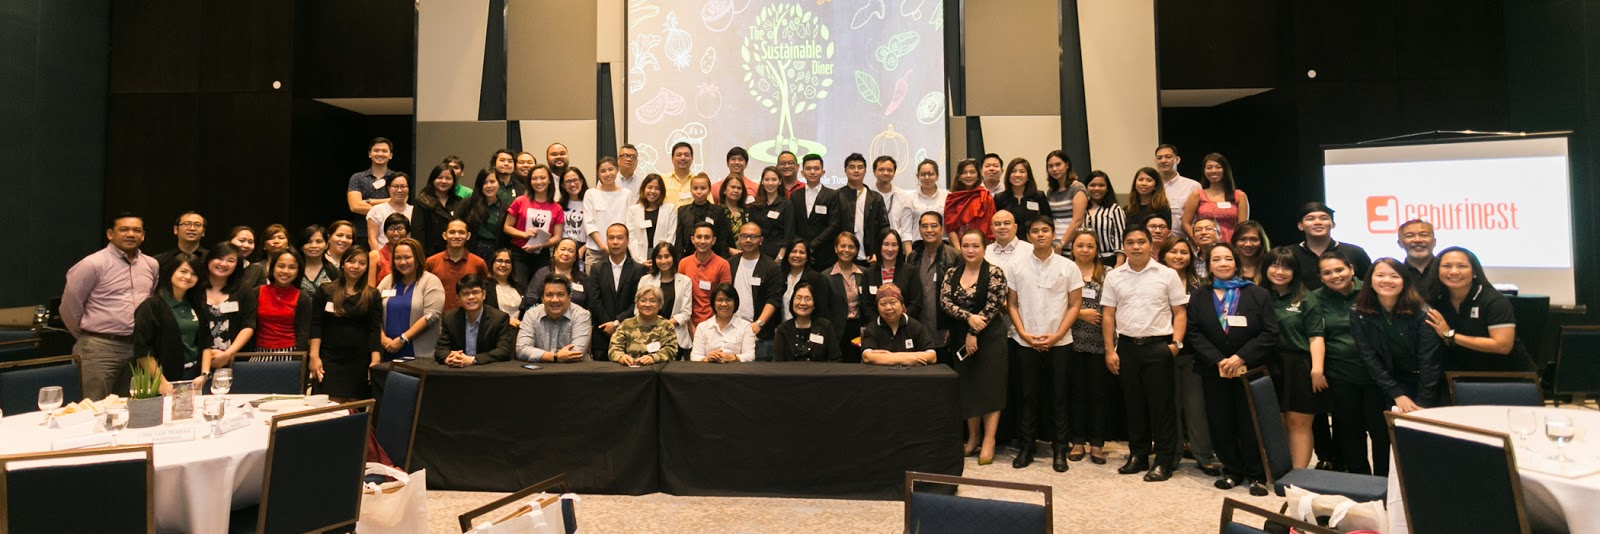 Key Takeaways from WWF Philippines' Sustainable Diner Forum